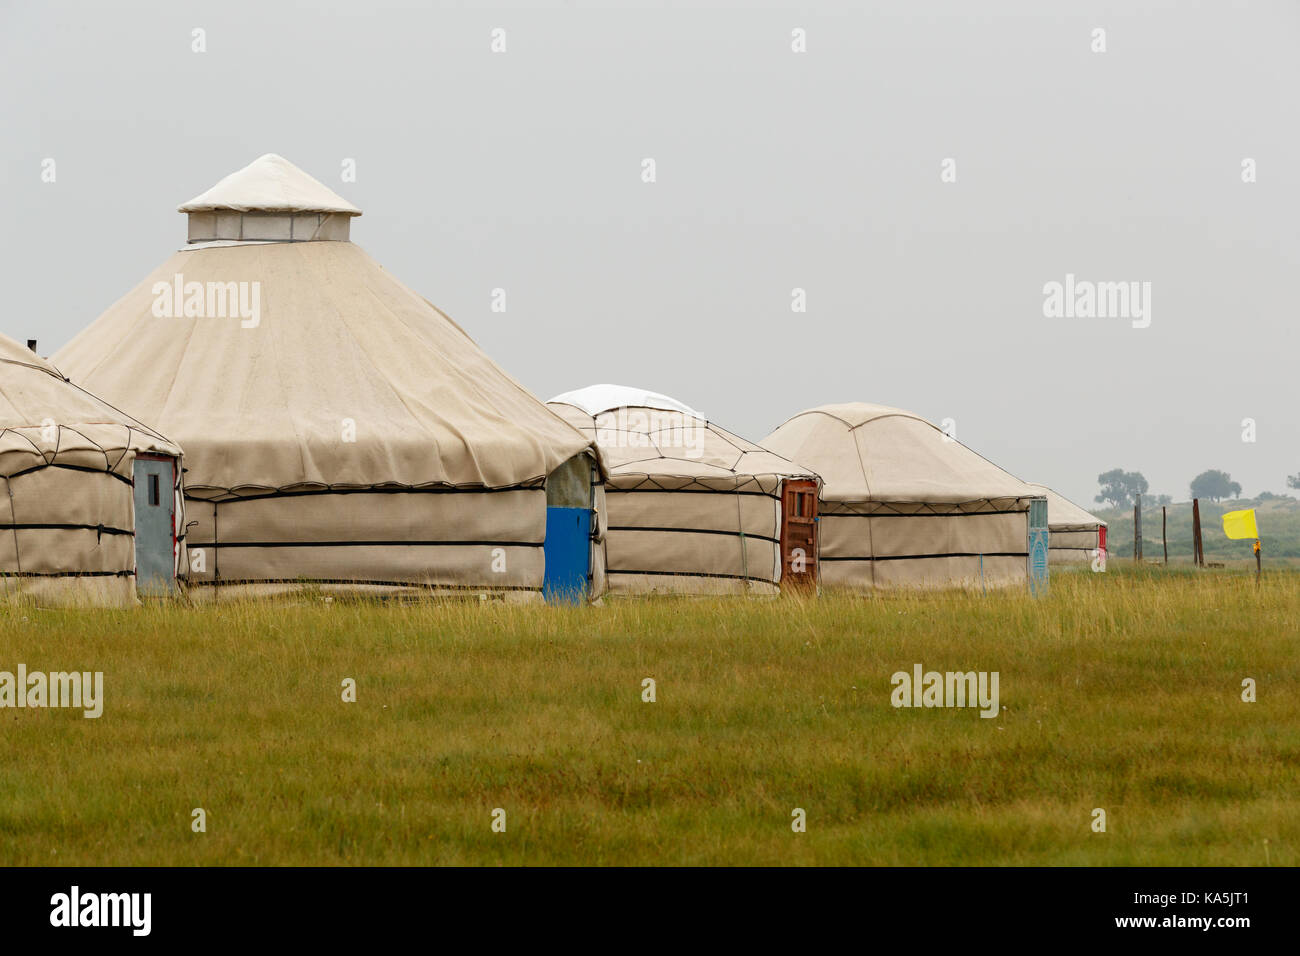 Traditional Yurts  or tents in the grasslands of Mongolia - Stock Image